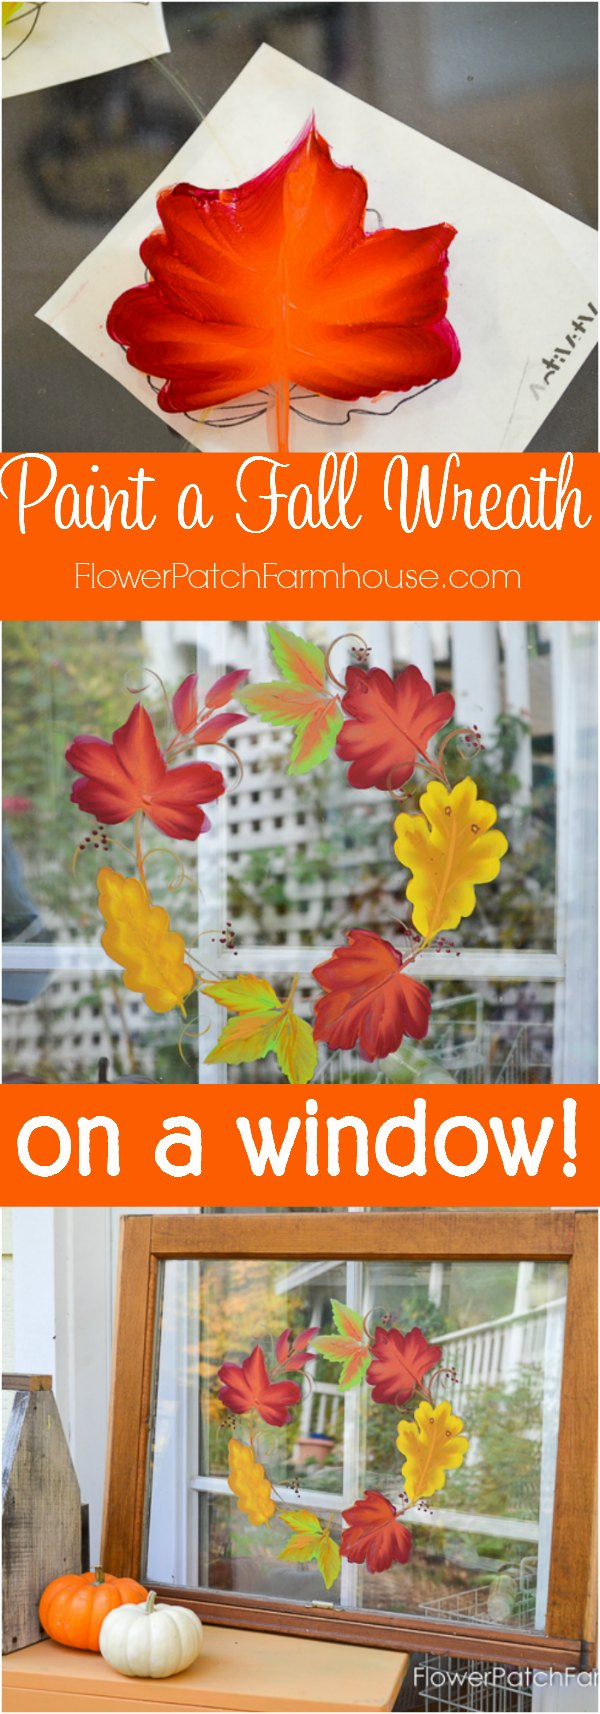 Paint Autumn Leaves on Glass. Gorgeous Fall colors arranged in a wreath in this painting tutorial. Step by step instructions and a free video. This is wonderful for Fall farmhouse or cottage DIY decor, a fun craft with kids or a seasonal change. Completely washable and ready for a new season.  #fallcrafts #diydecor #easypainting #beginnerpainting #farmhousestyle #diycottagedecor